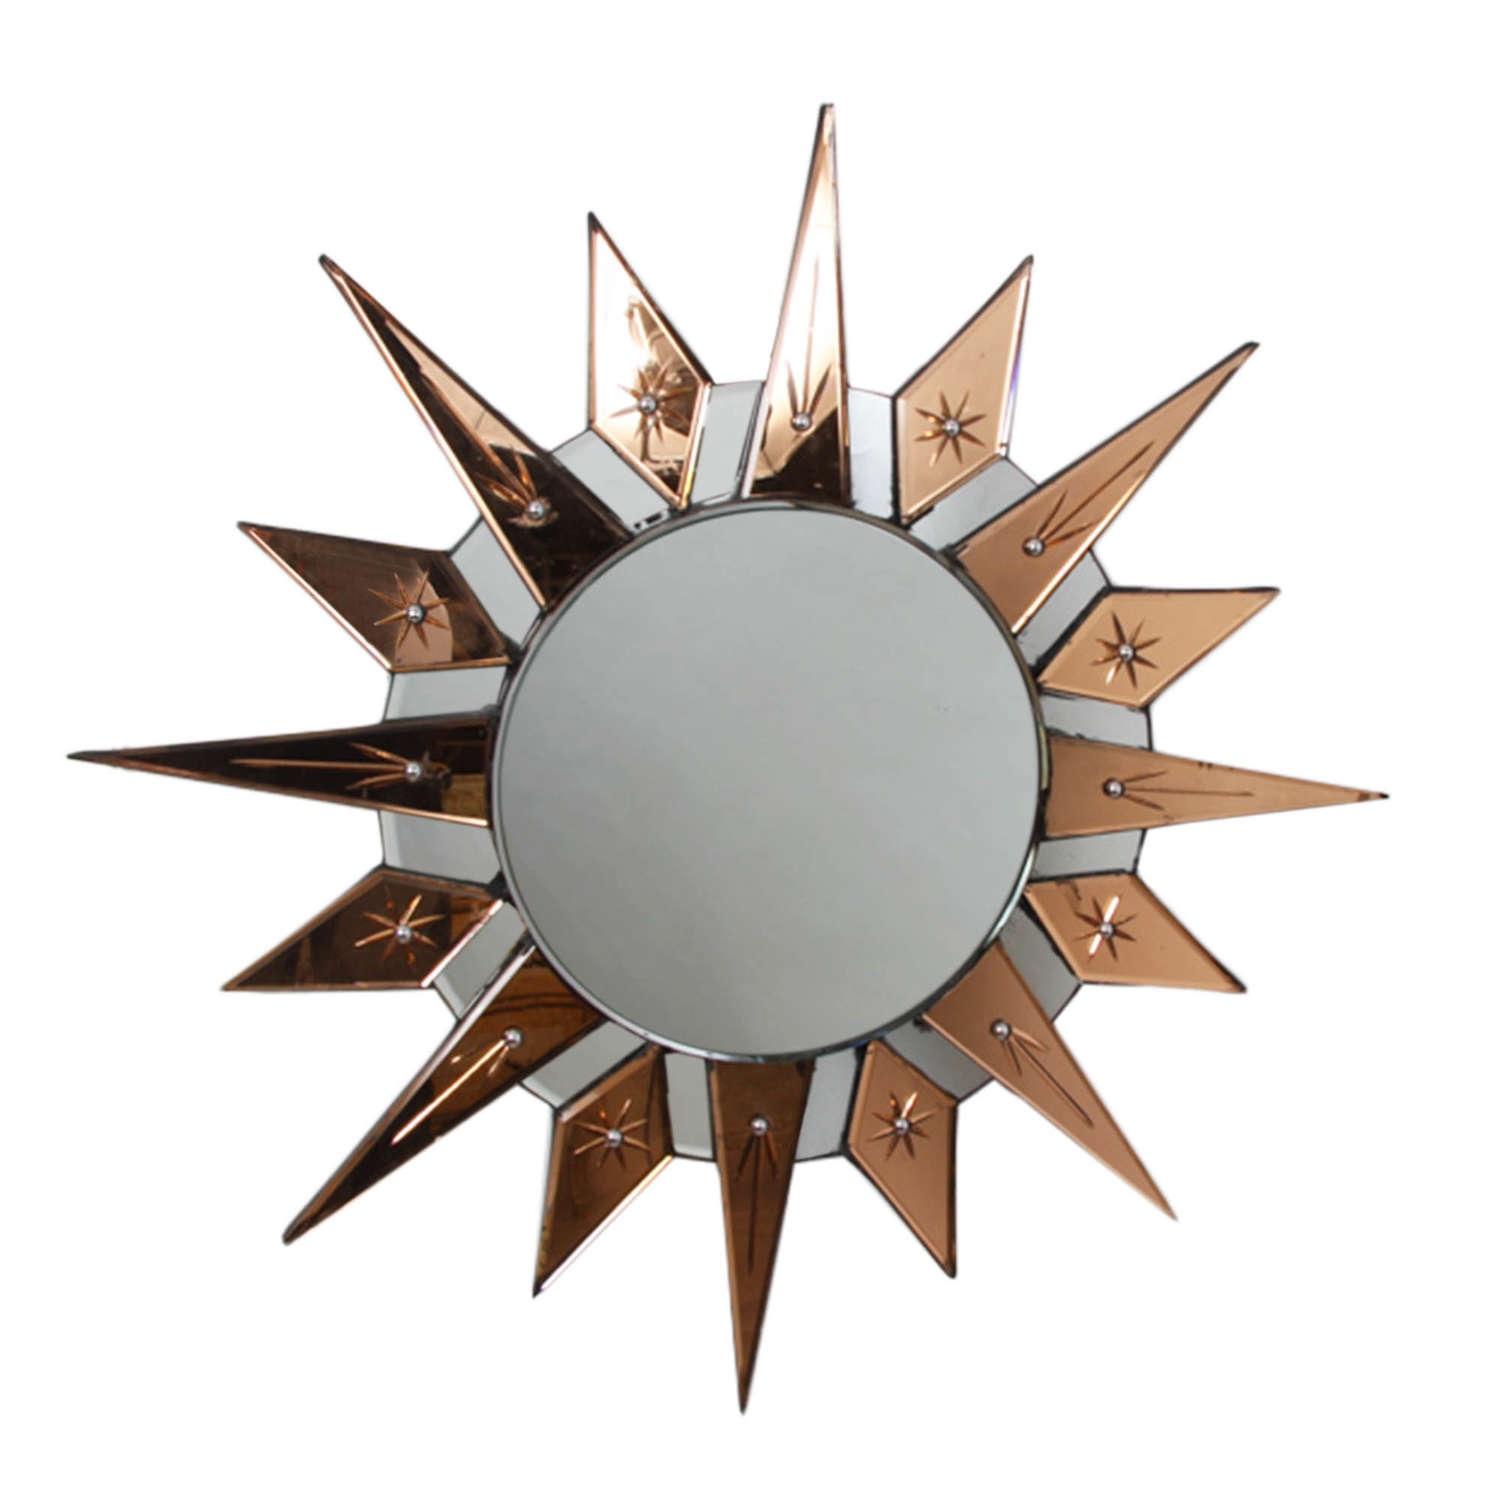 English 1930s Sunburst Mirror